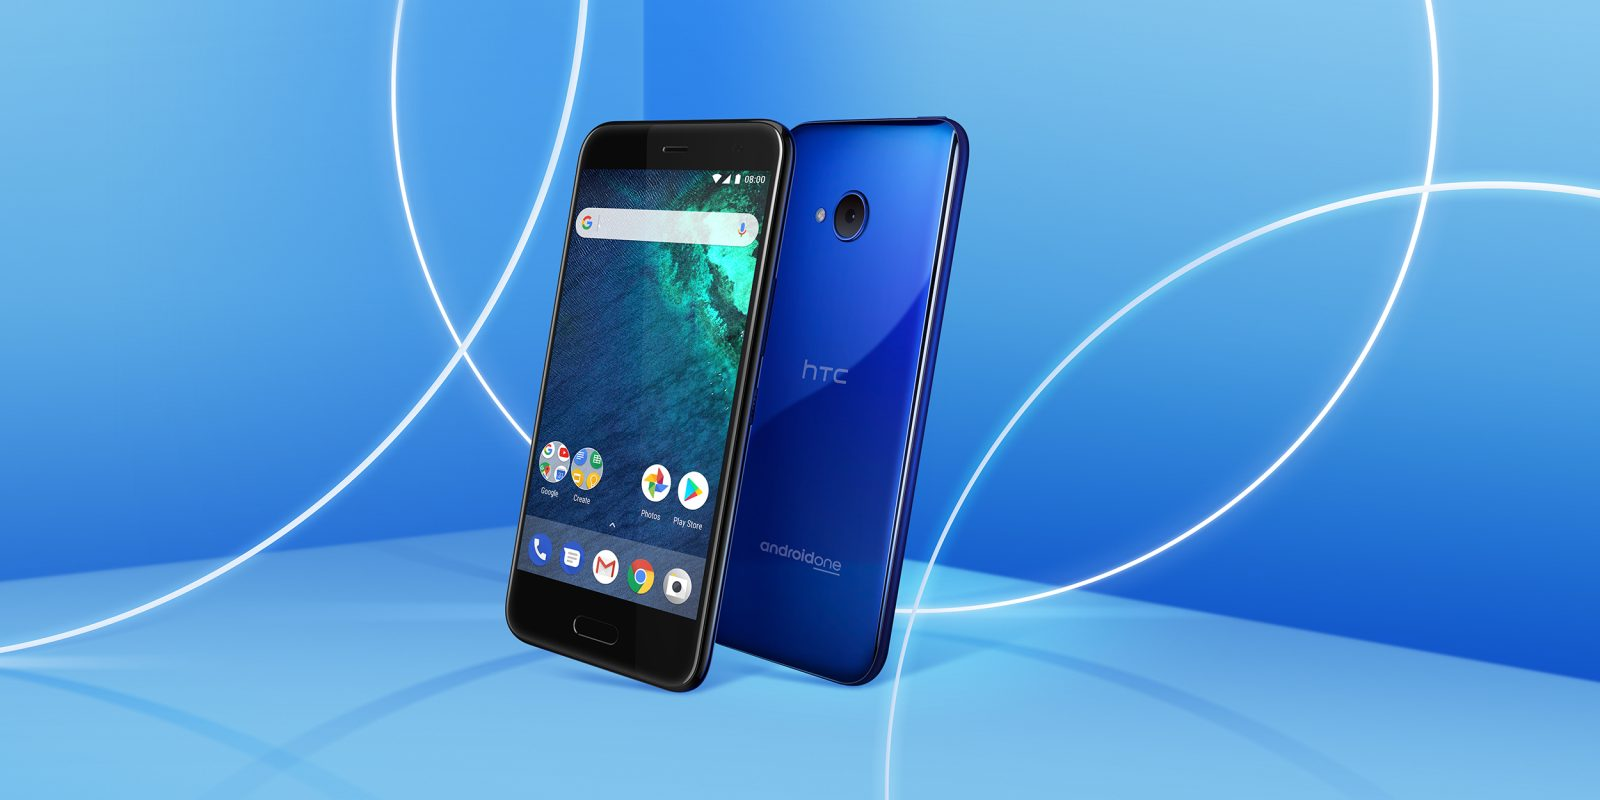 Best Affordable Android Smartphones You Can Buy November 2017 9to5google